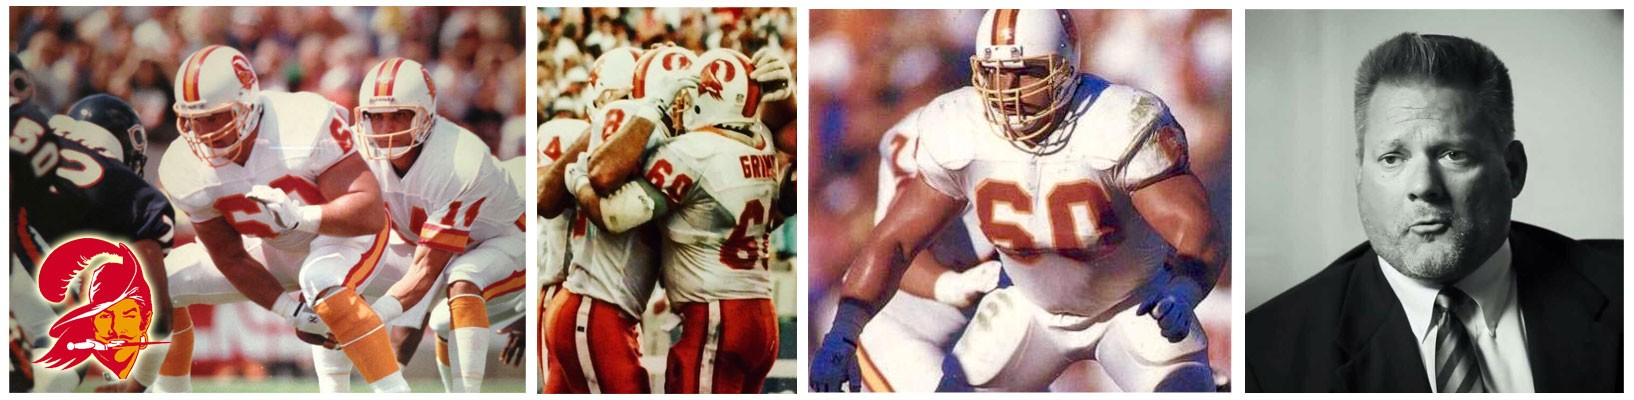 Randy Grimes collage of football images